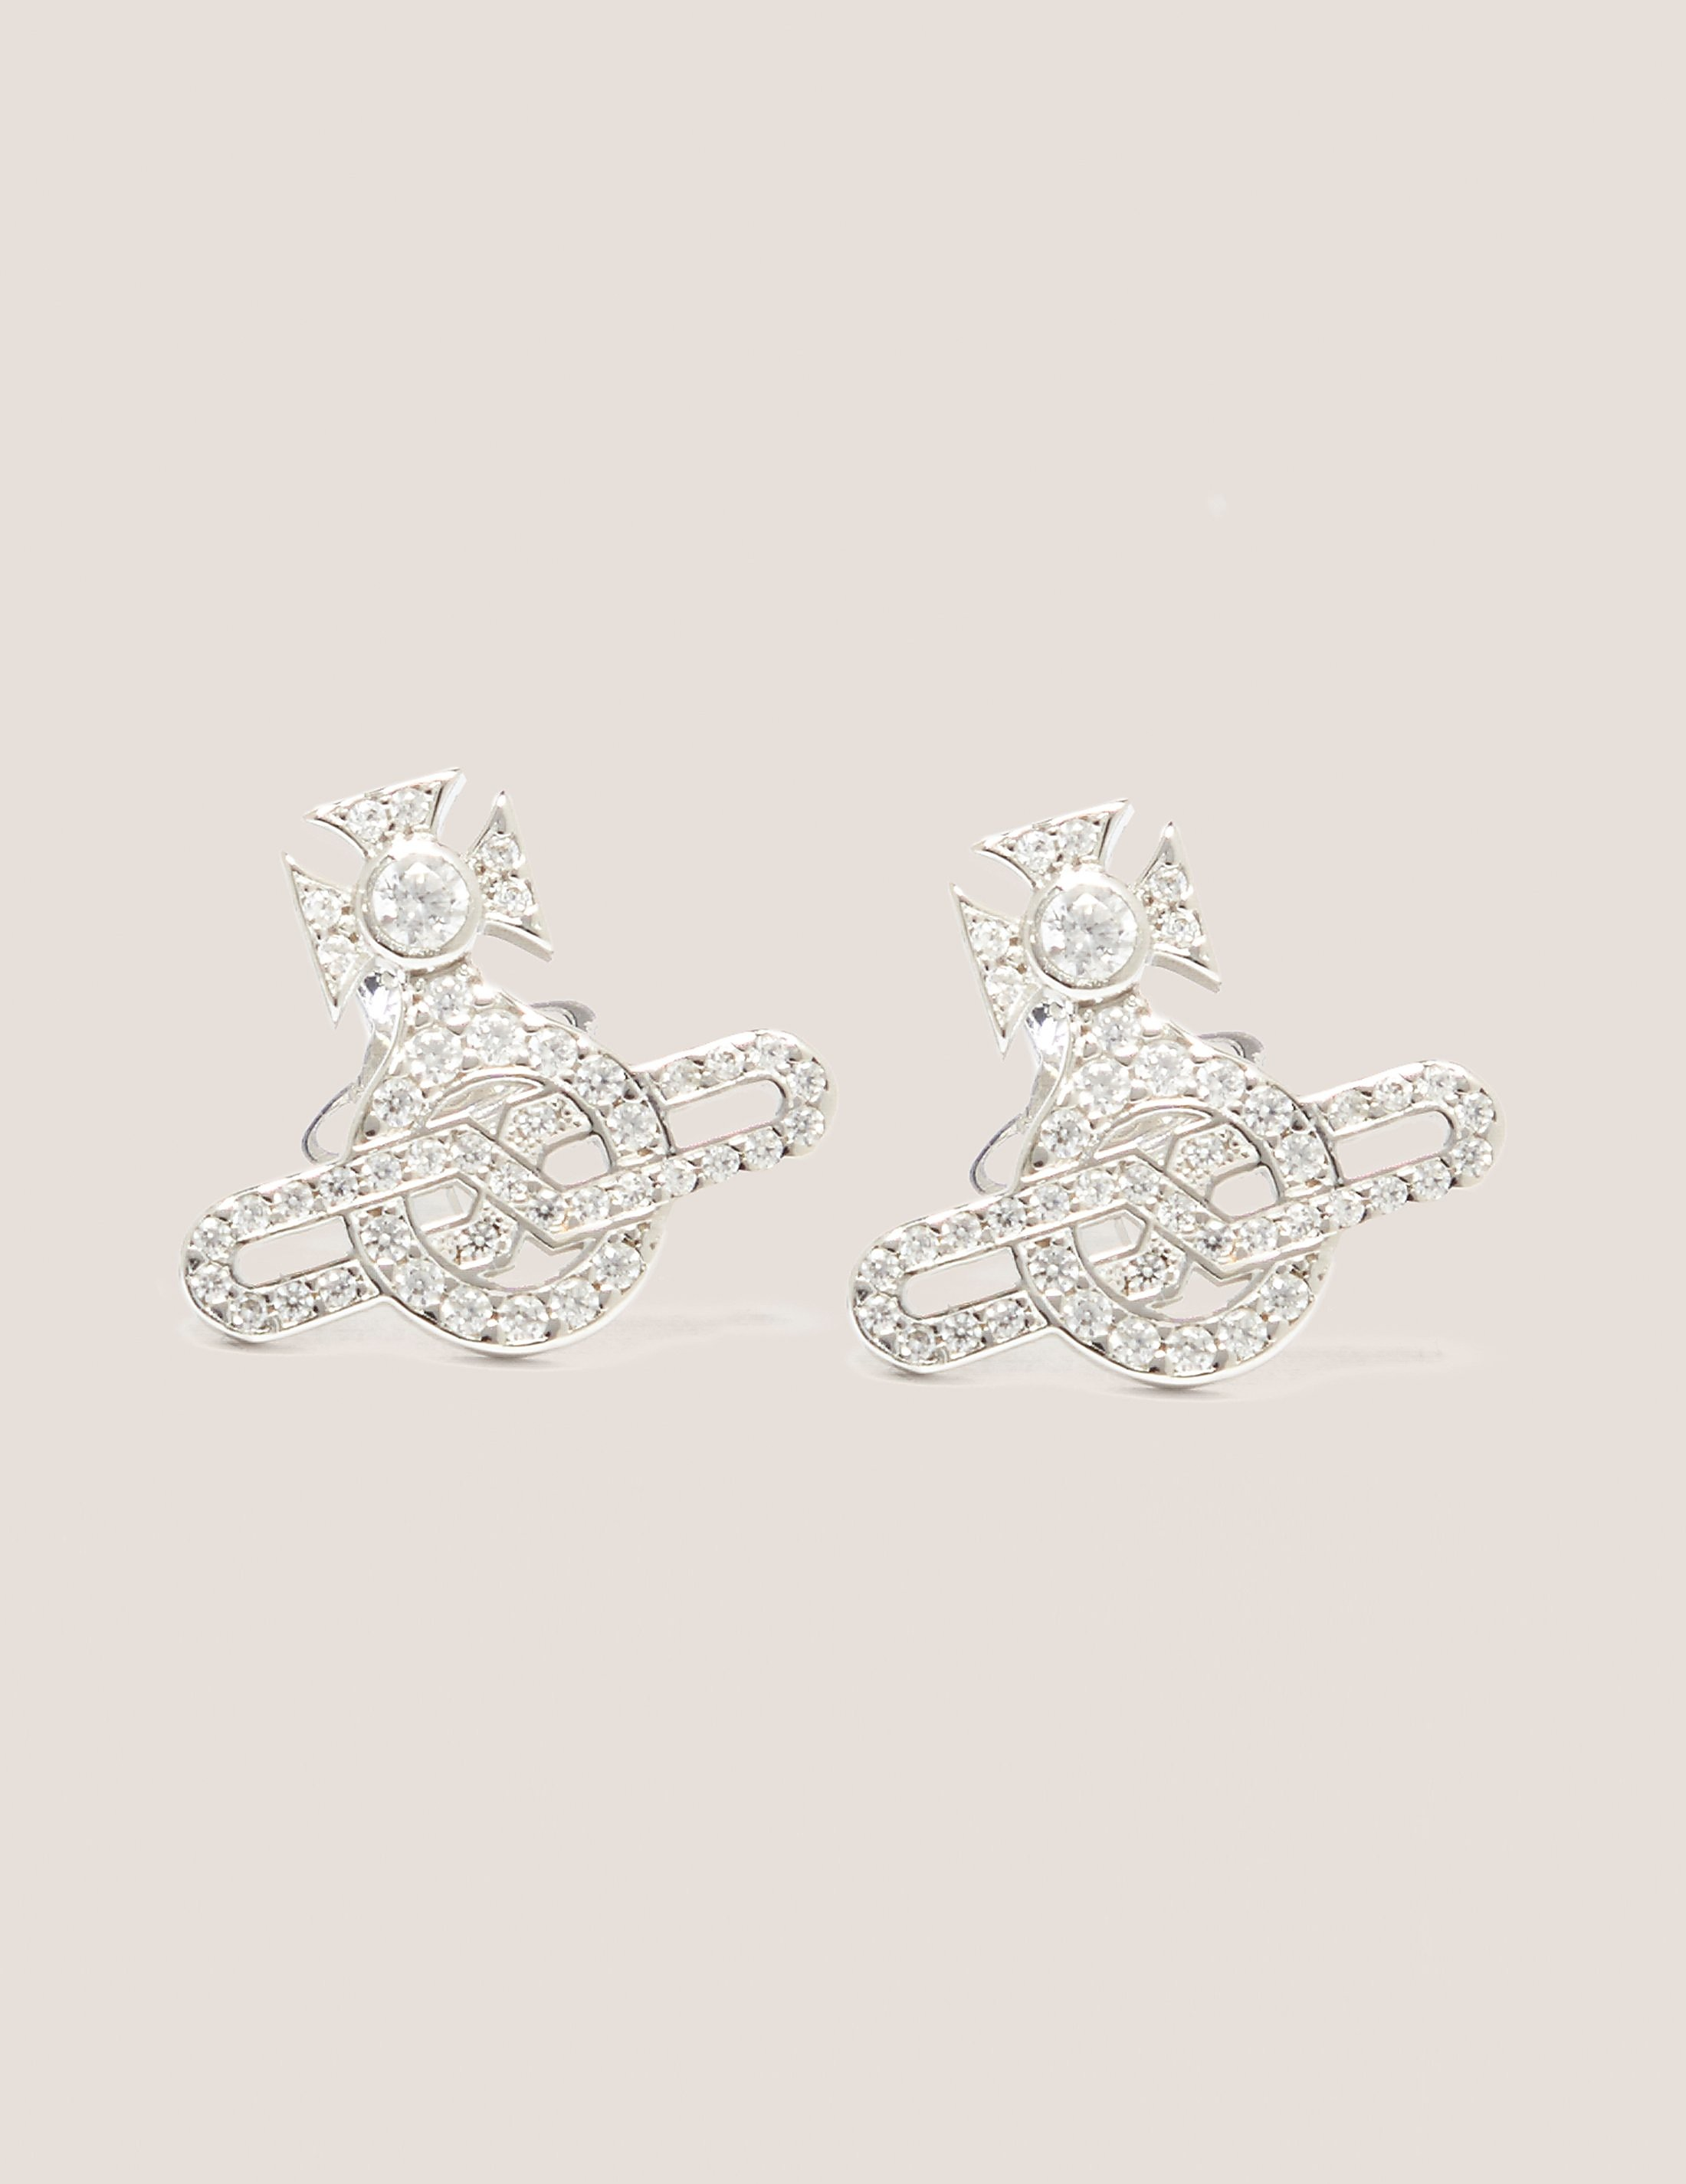 Vivienne Westwood Infinity Orb Earrings